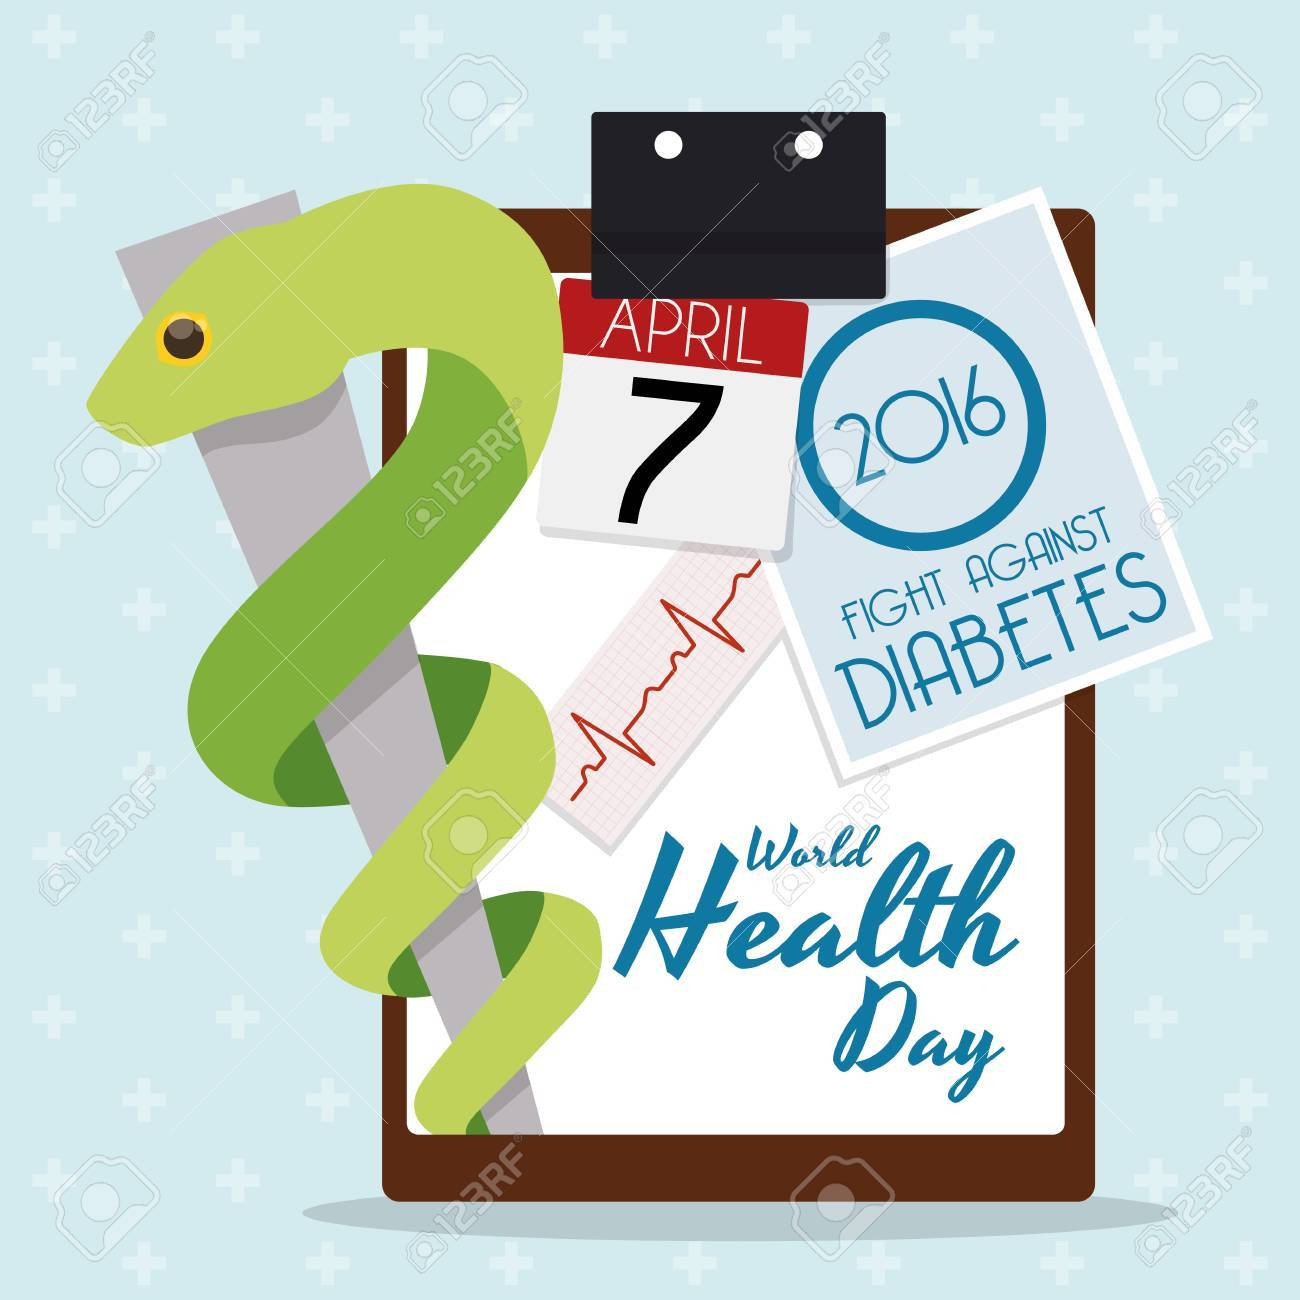 Commemorative Design For World Health Day 2016 Fight Against Diabetes And A Rod Of Asclepius